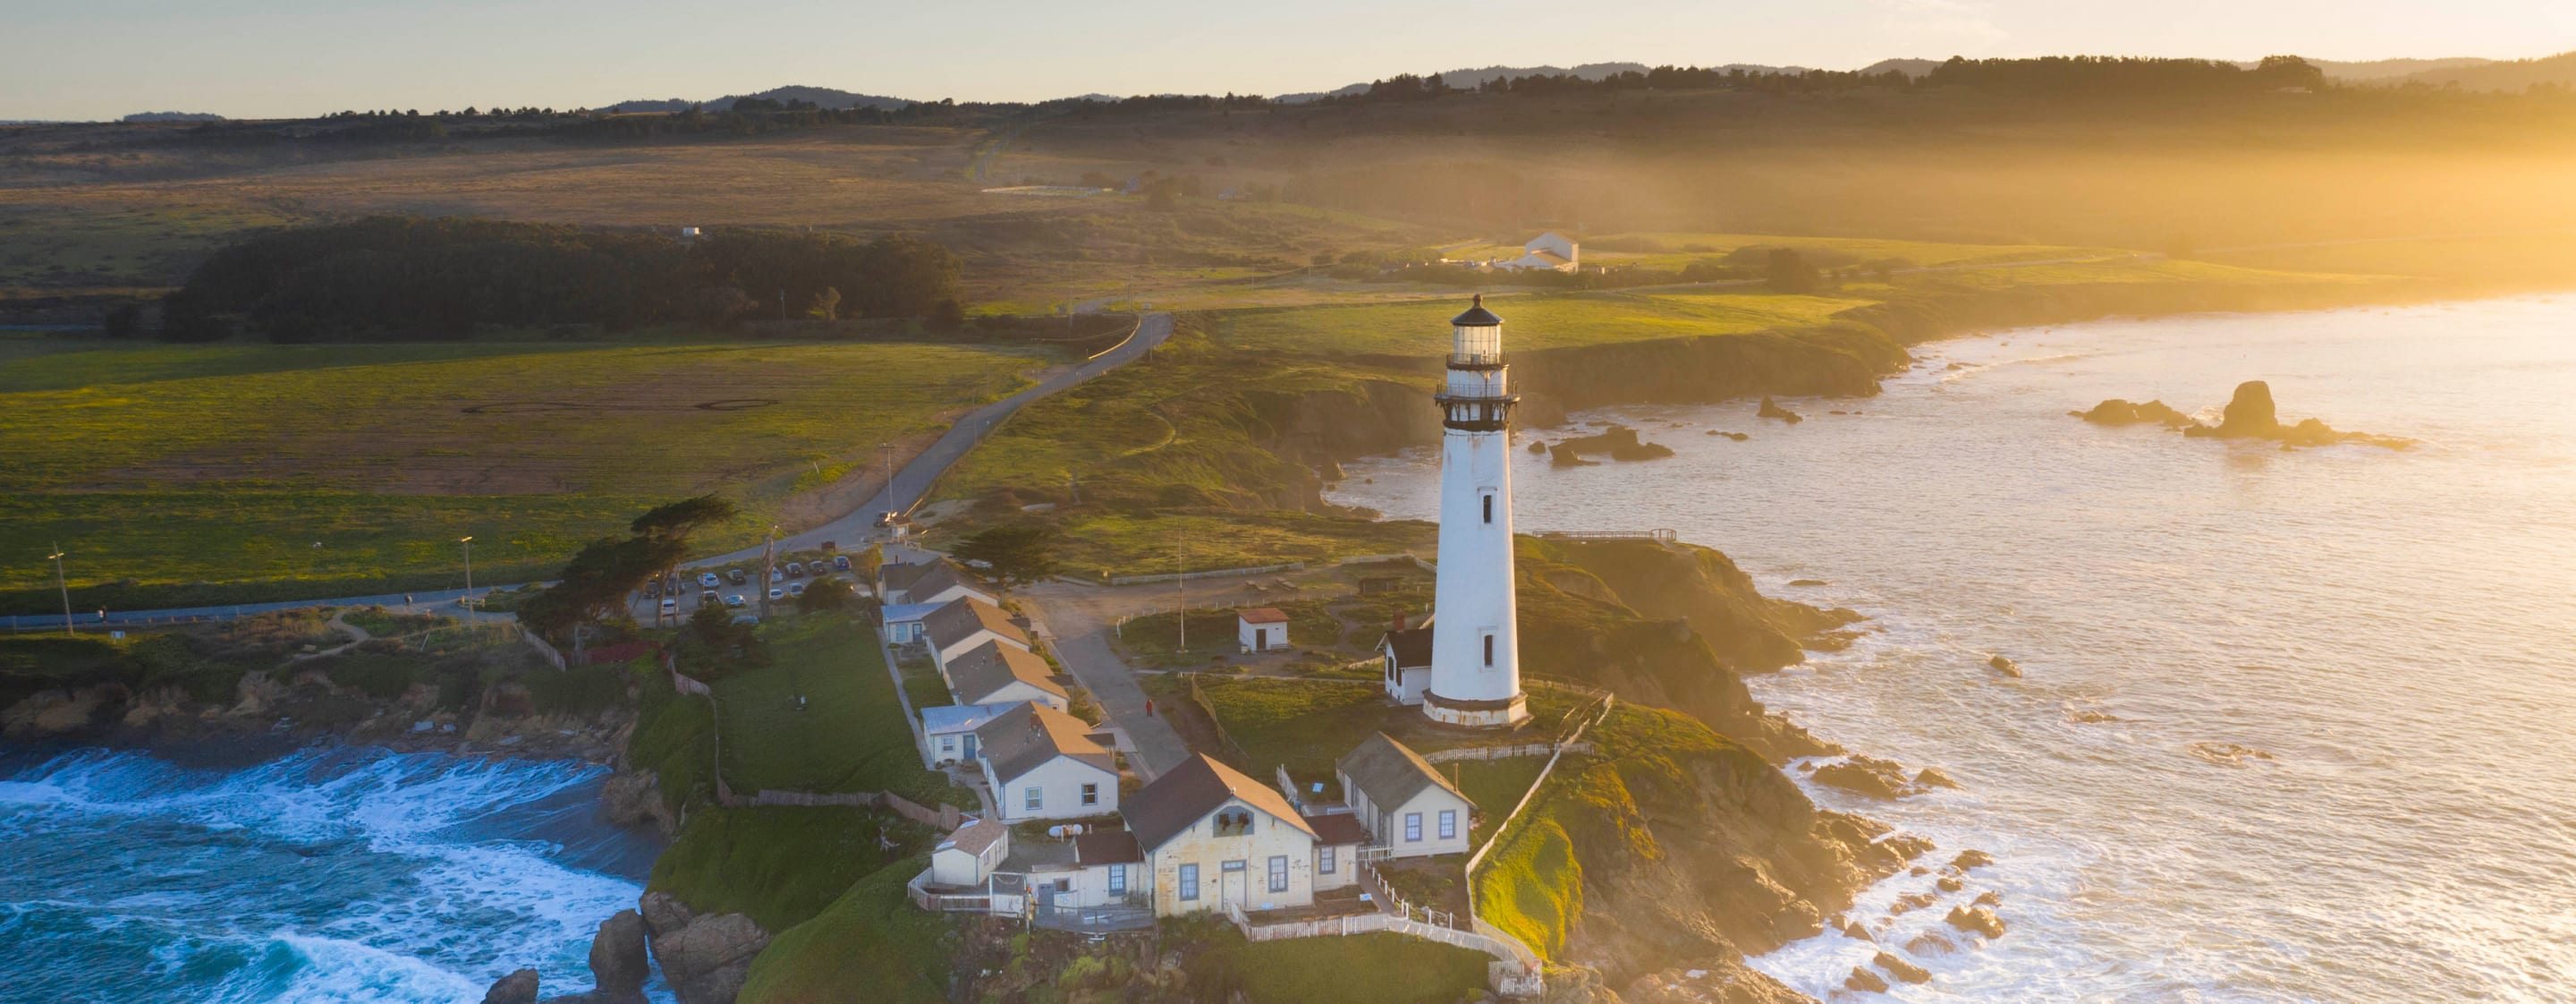 Lighthouse in a coastal town